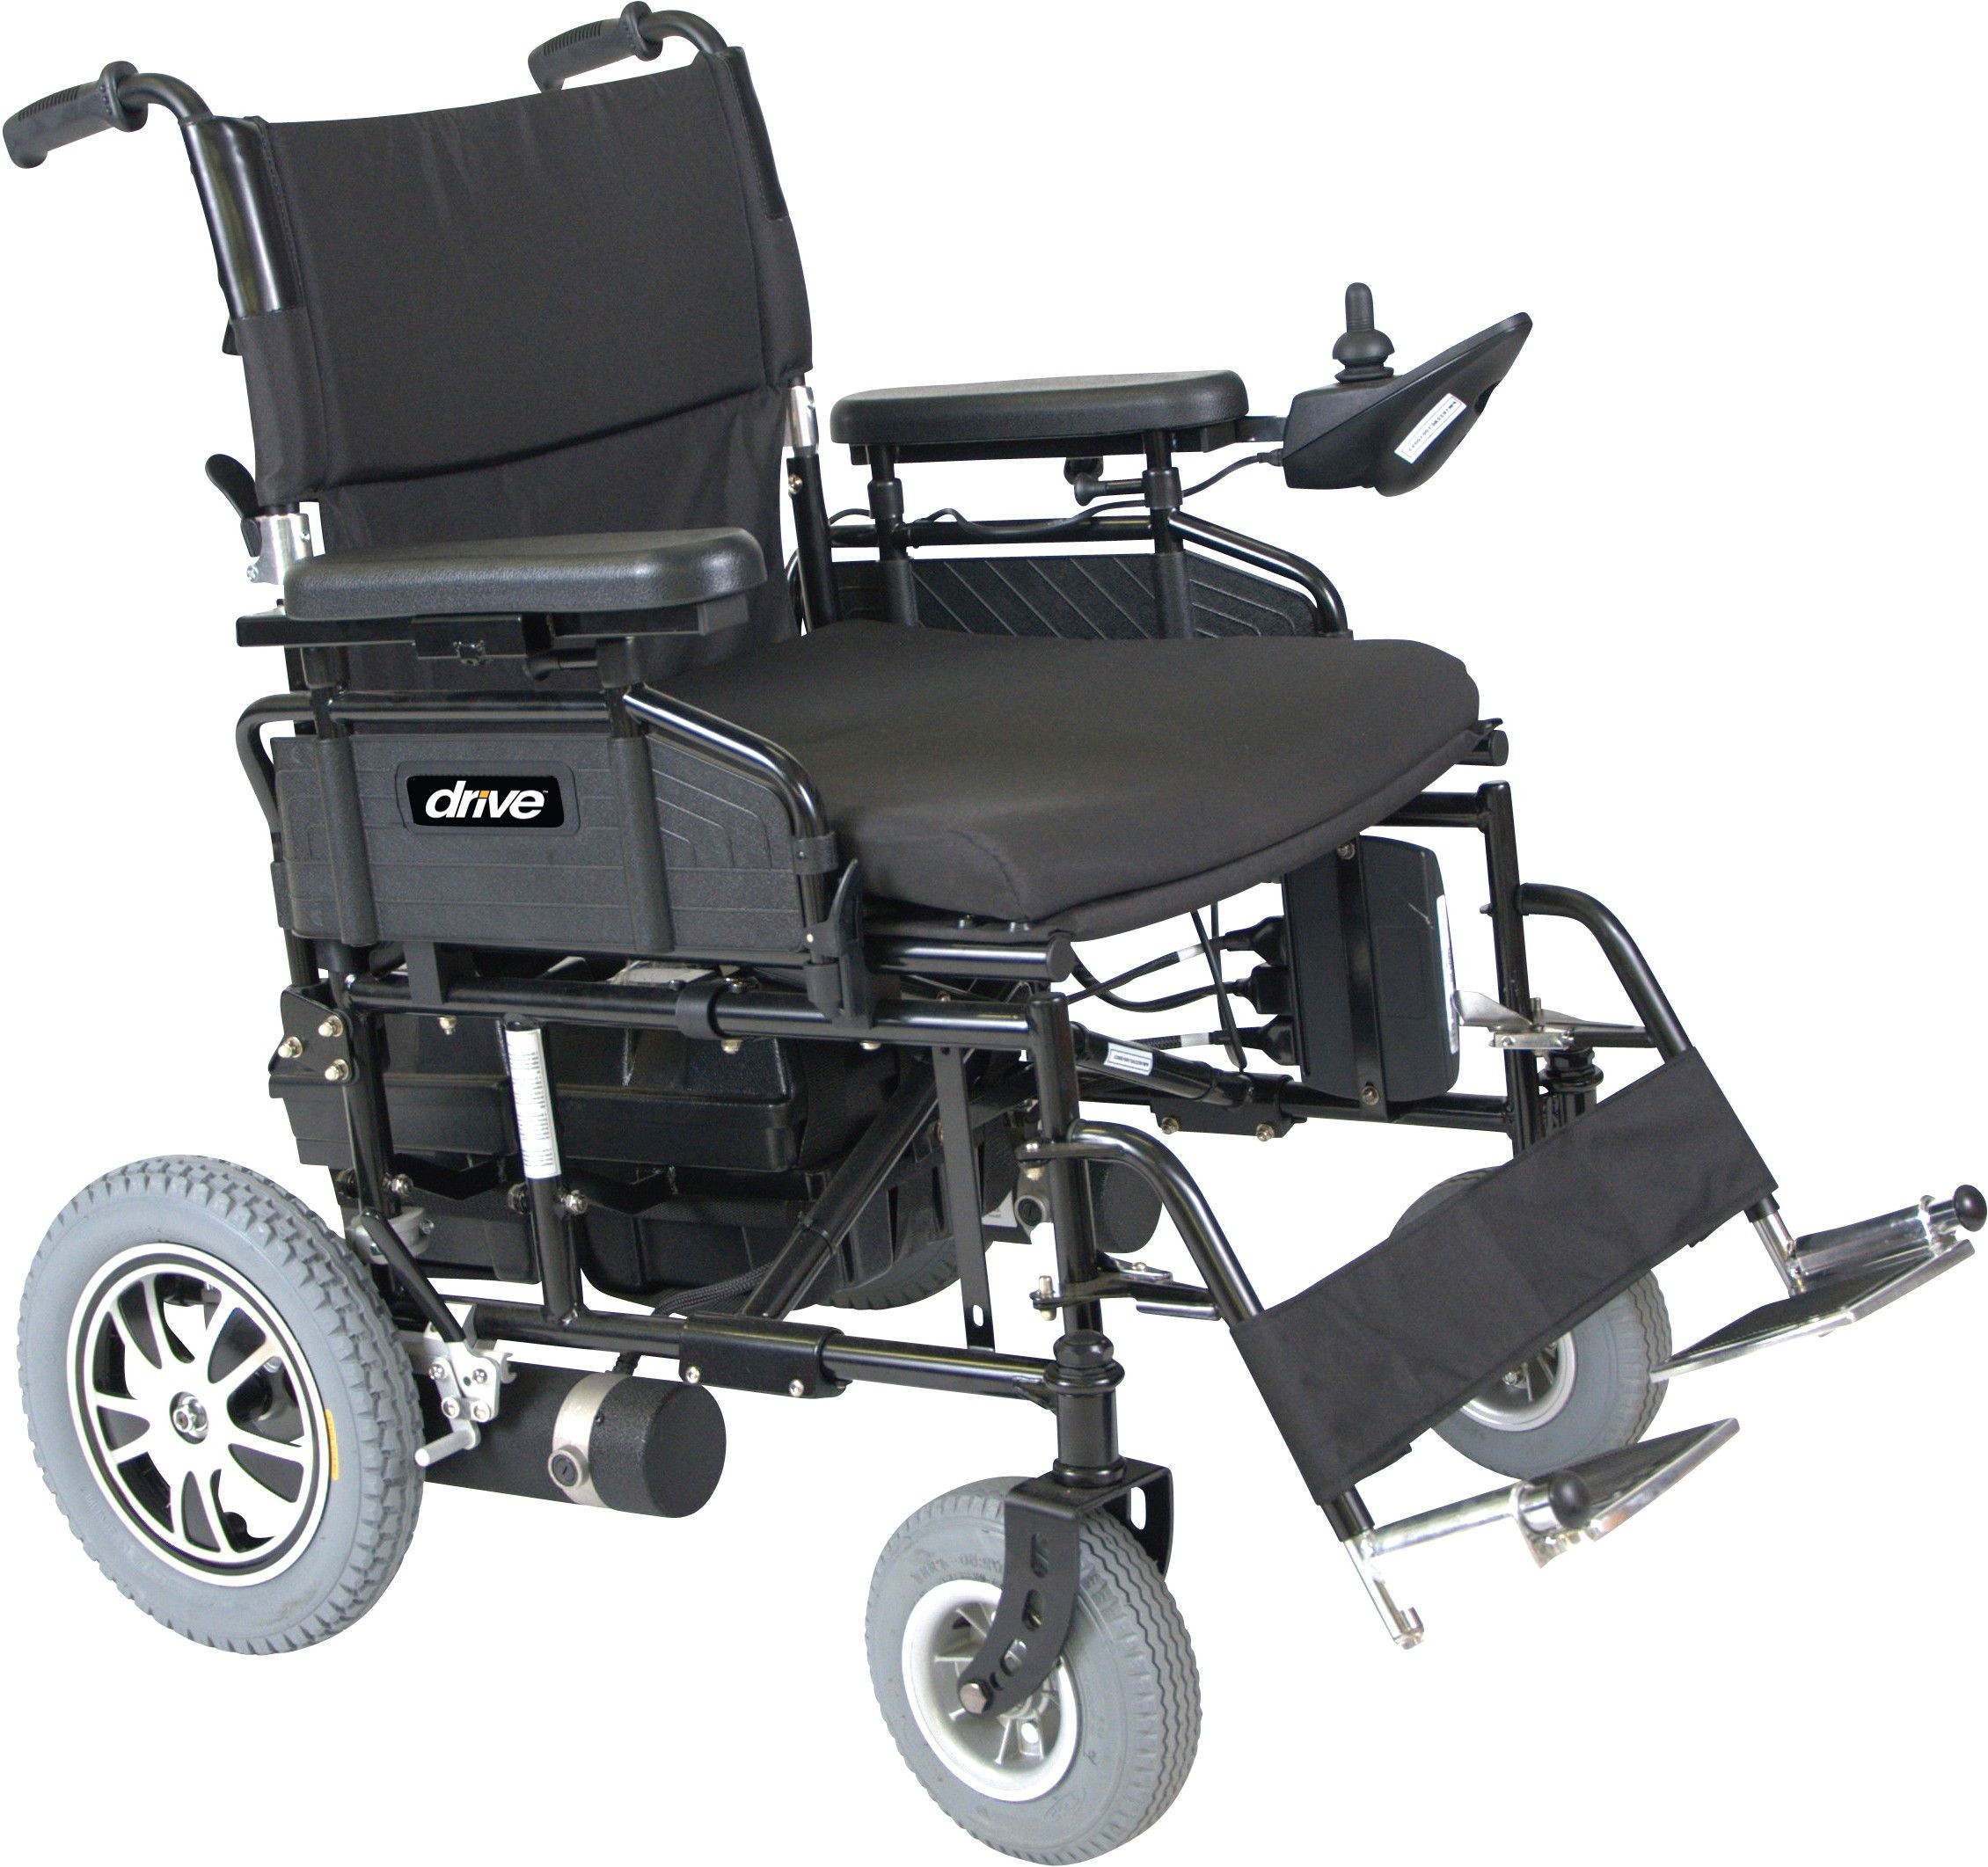 Wildcat 450 Power Wheelchair For Sale At The Lowest Price